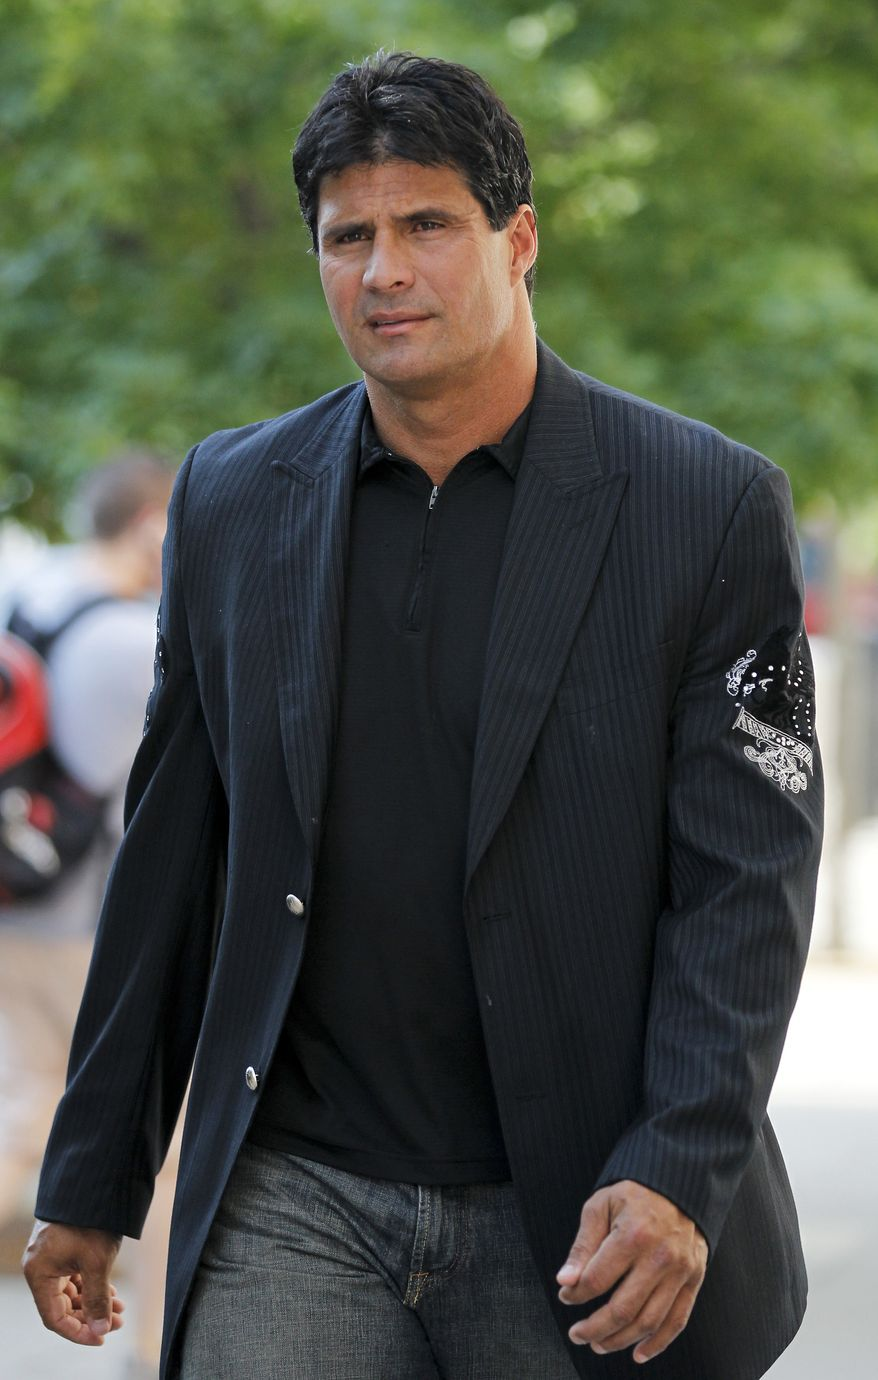 Jose Canseco (Associated Press)